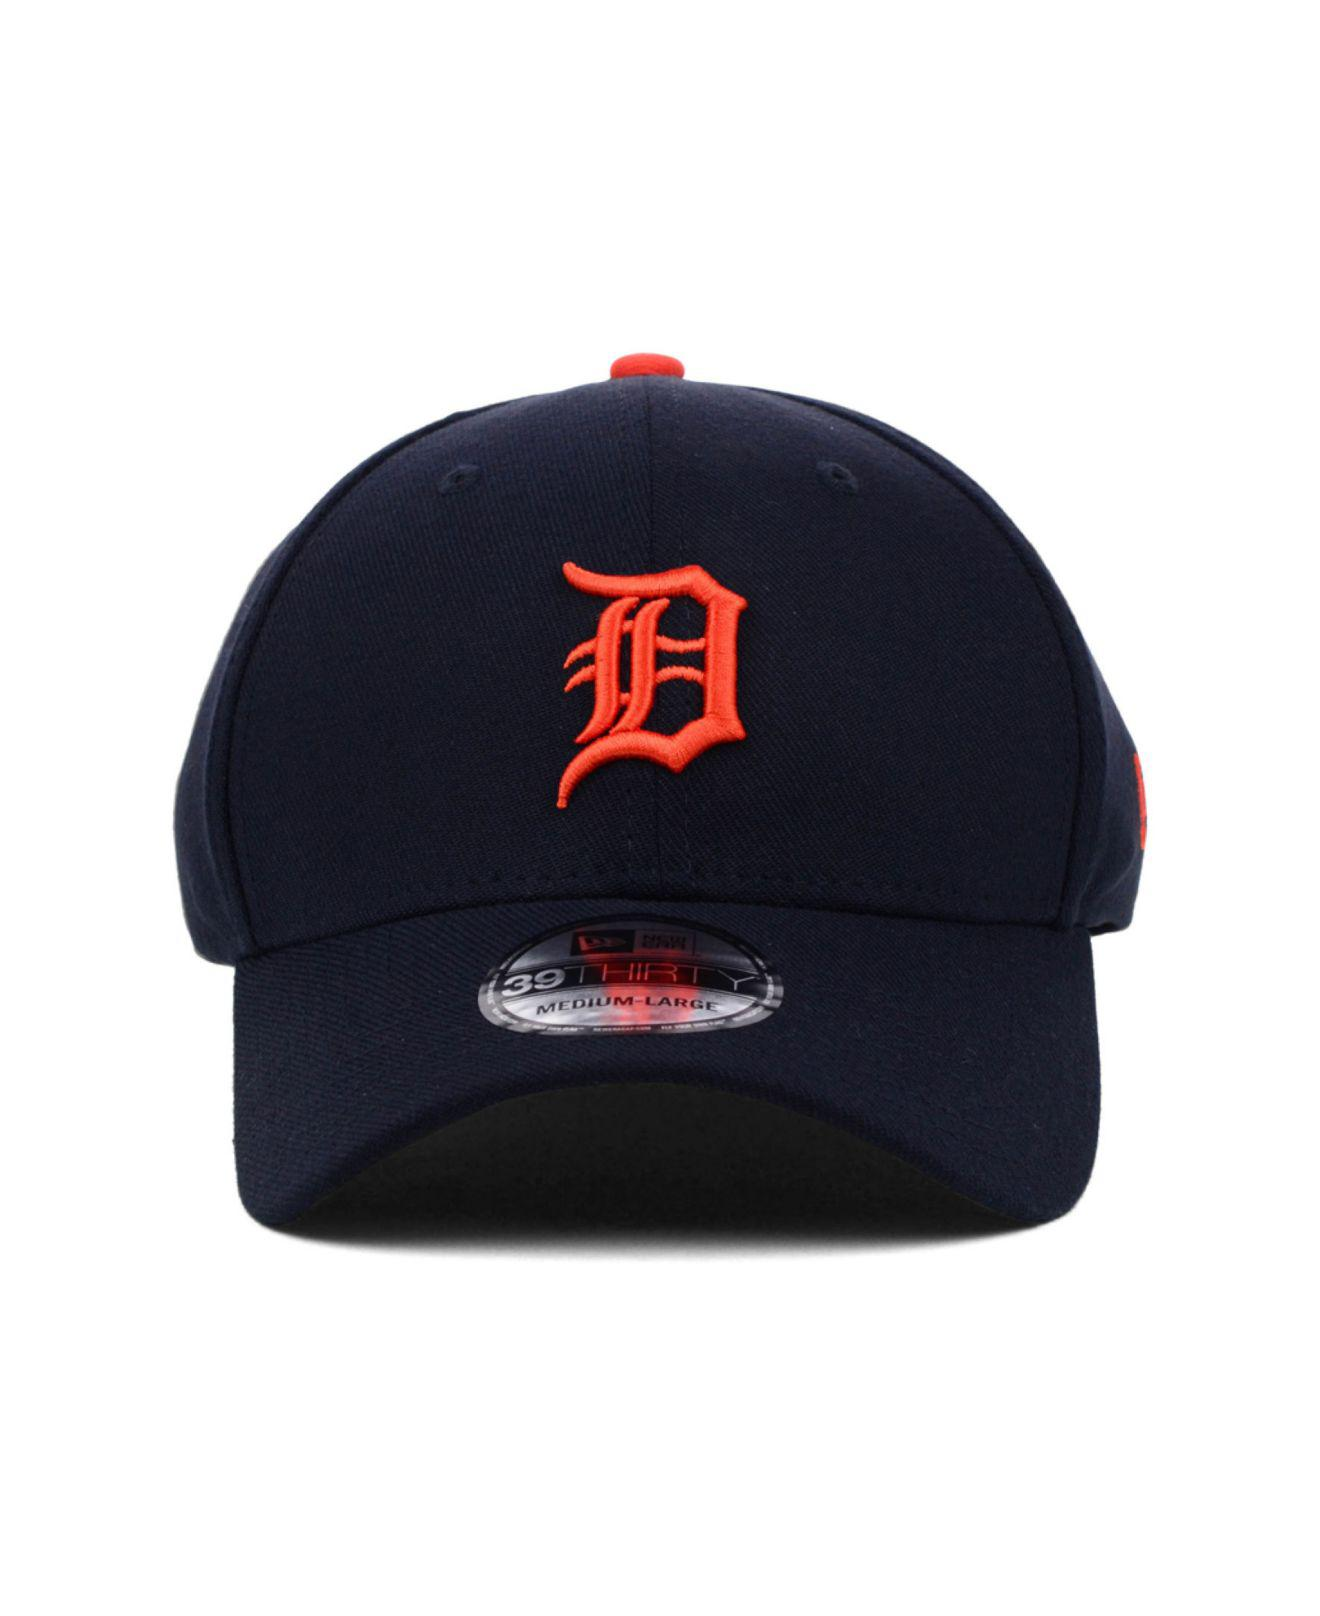 newest 2fd17 49964 ... new era gray grayed out neo 39thirty flex hat 63a6f 41ef8  italy lyst  ktz detroit tigers mlb team classic 39thirty cap in blue for men b2355 32ccd